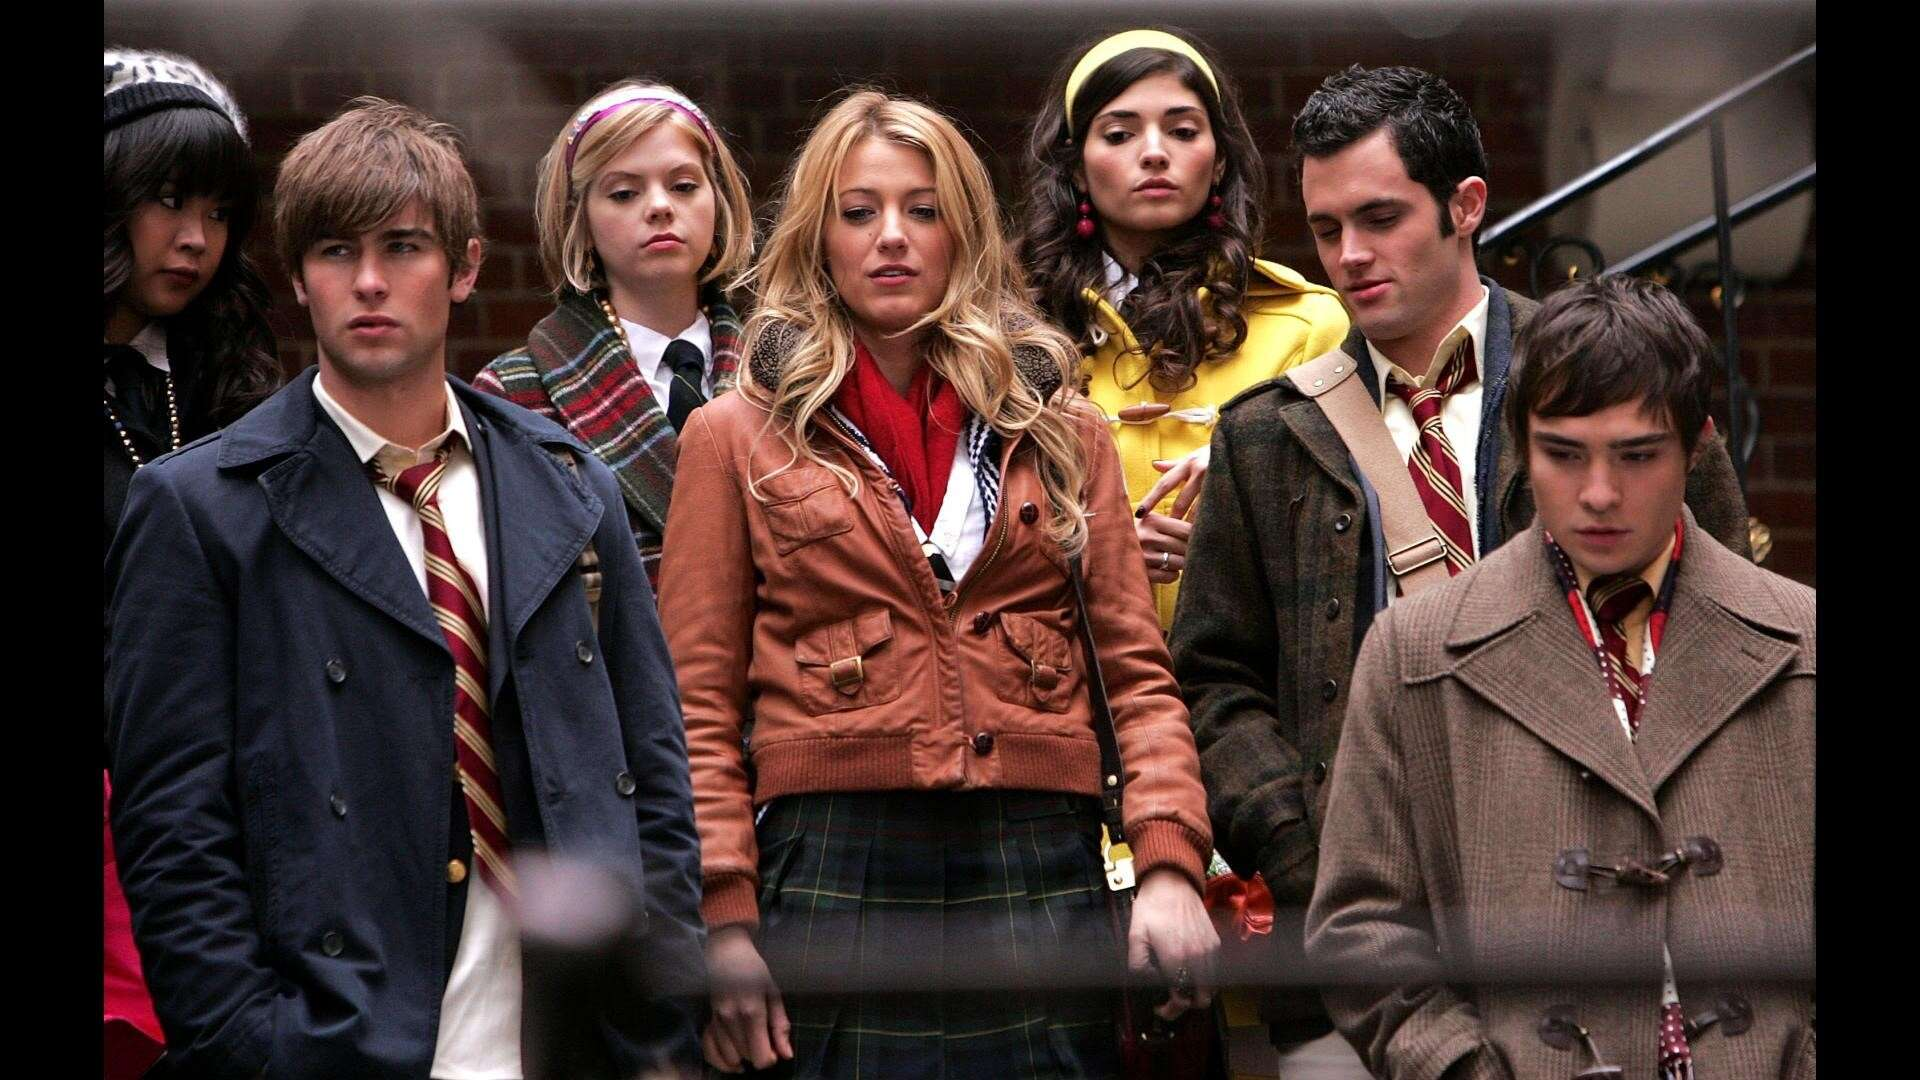 The upcoming Gossip Girl reboot will more accurately reflect the diversity of New York City